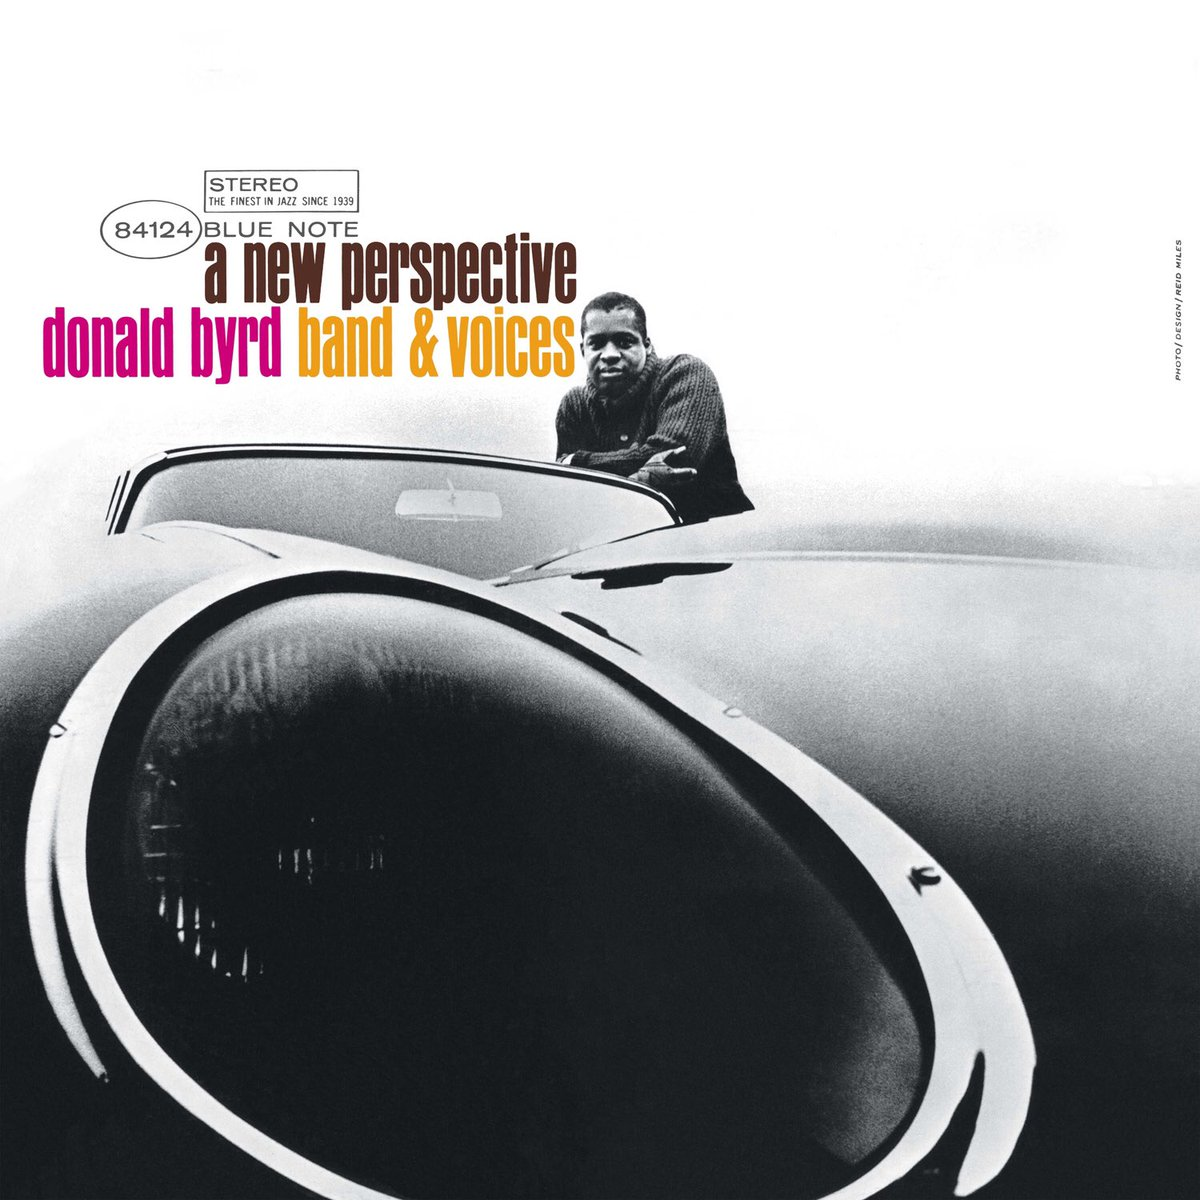 #DonaldByrd combined gospel voices &amp; a jazz band to stunning effect on #CristoRedentor from #ANewPerspective  https:// bluenote.lnk.to/BlueNoteMonthly  &nbsp;  <br>http://pic.twitter.com/5hp2rcChUv